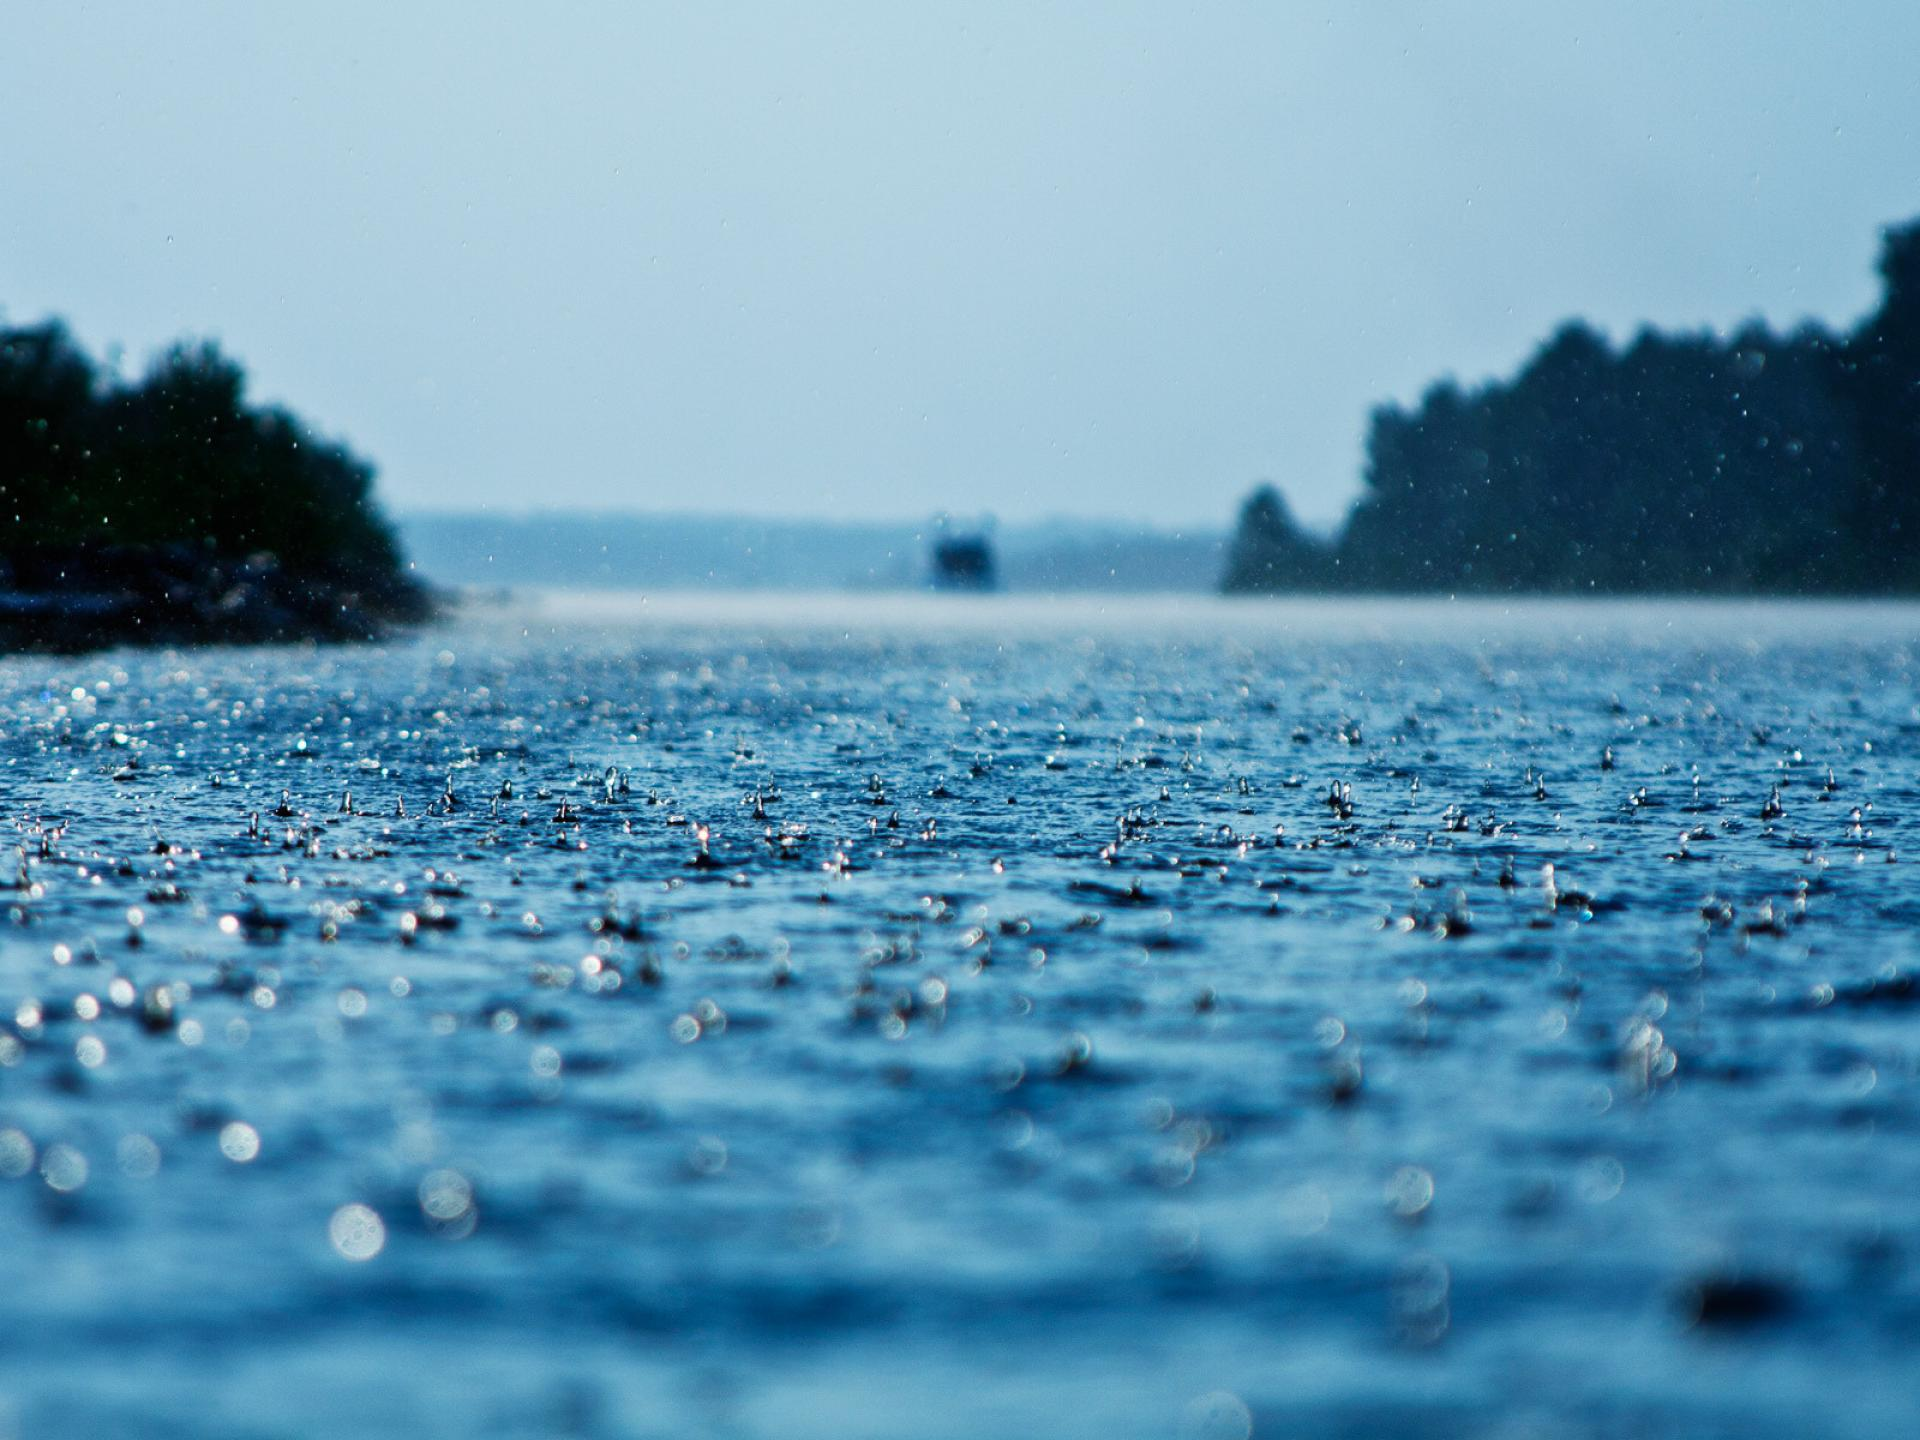 rain-city-drops-macro-water-river-nature-free-hd-253086